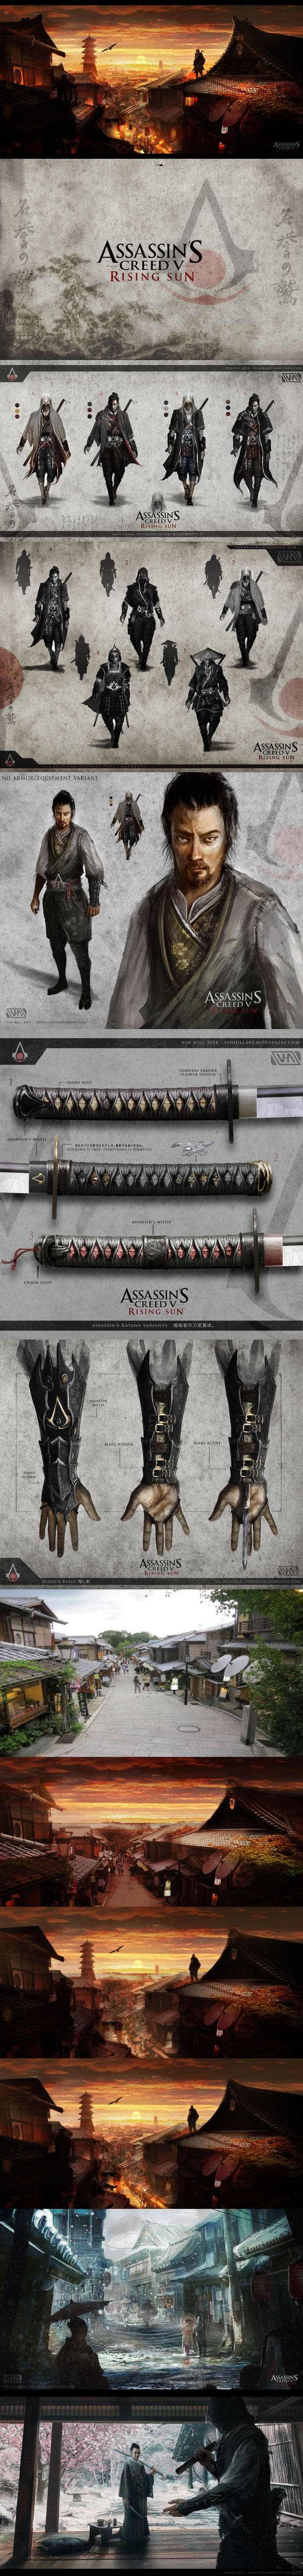 AssassinsCreedRisingSun